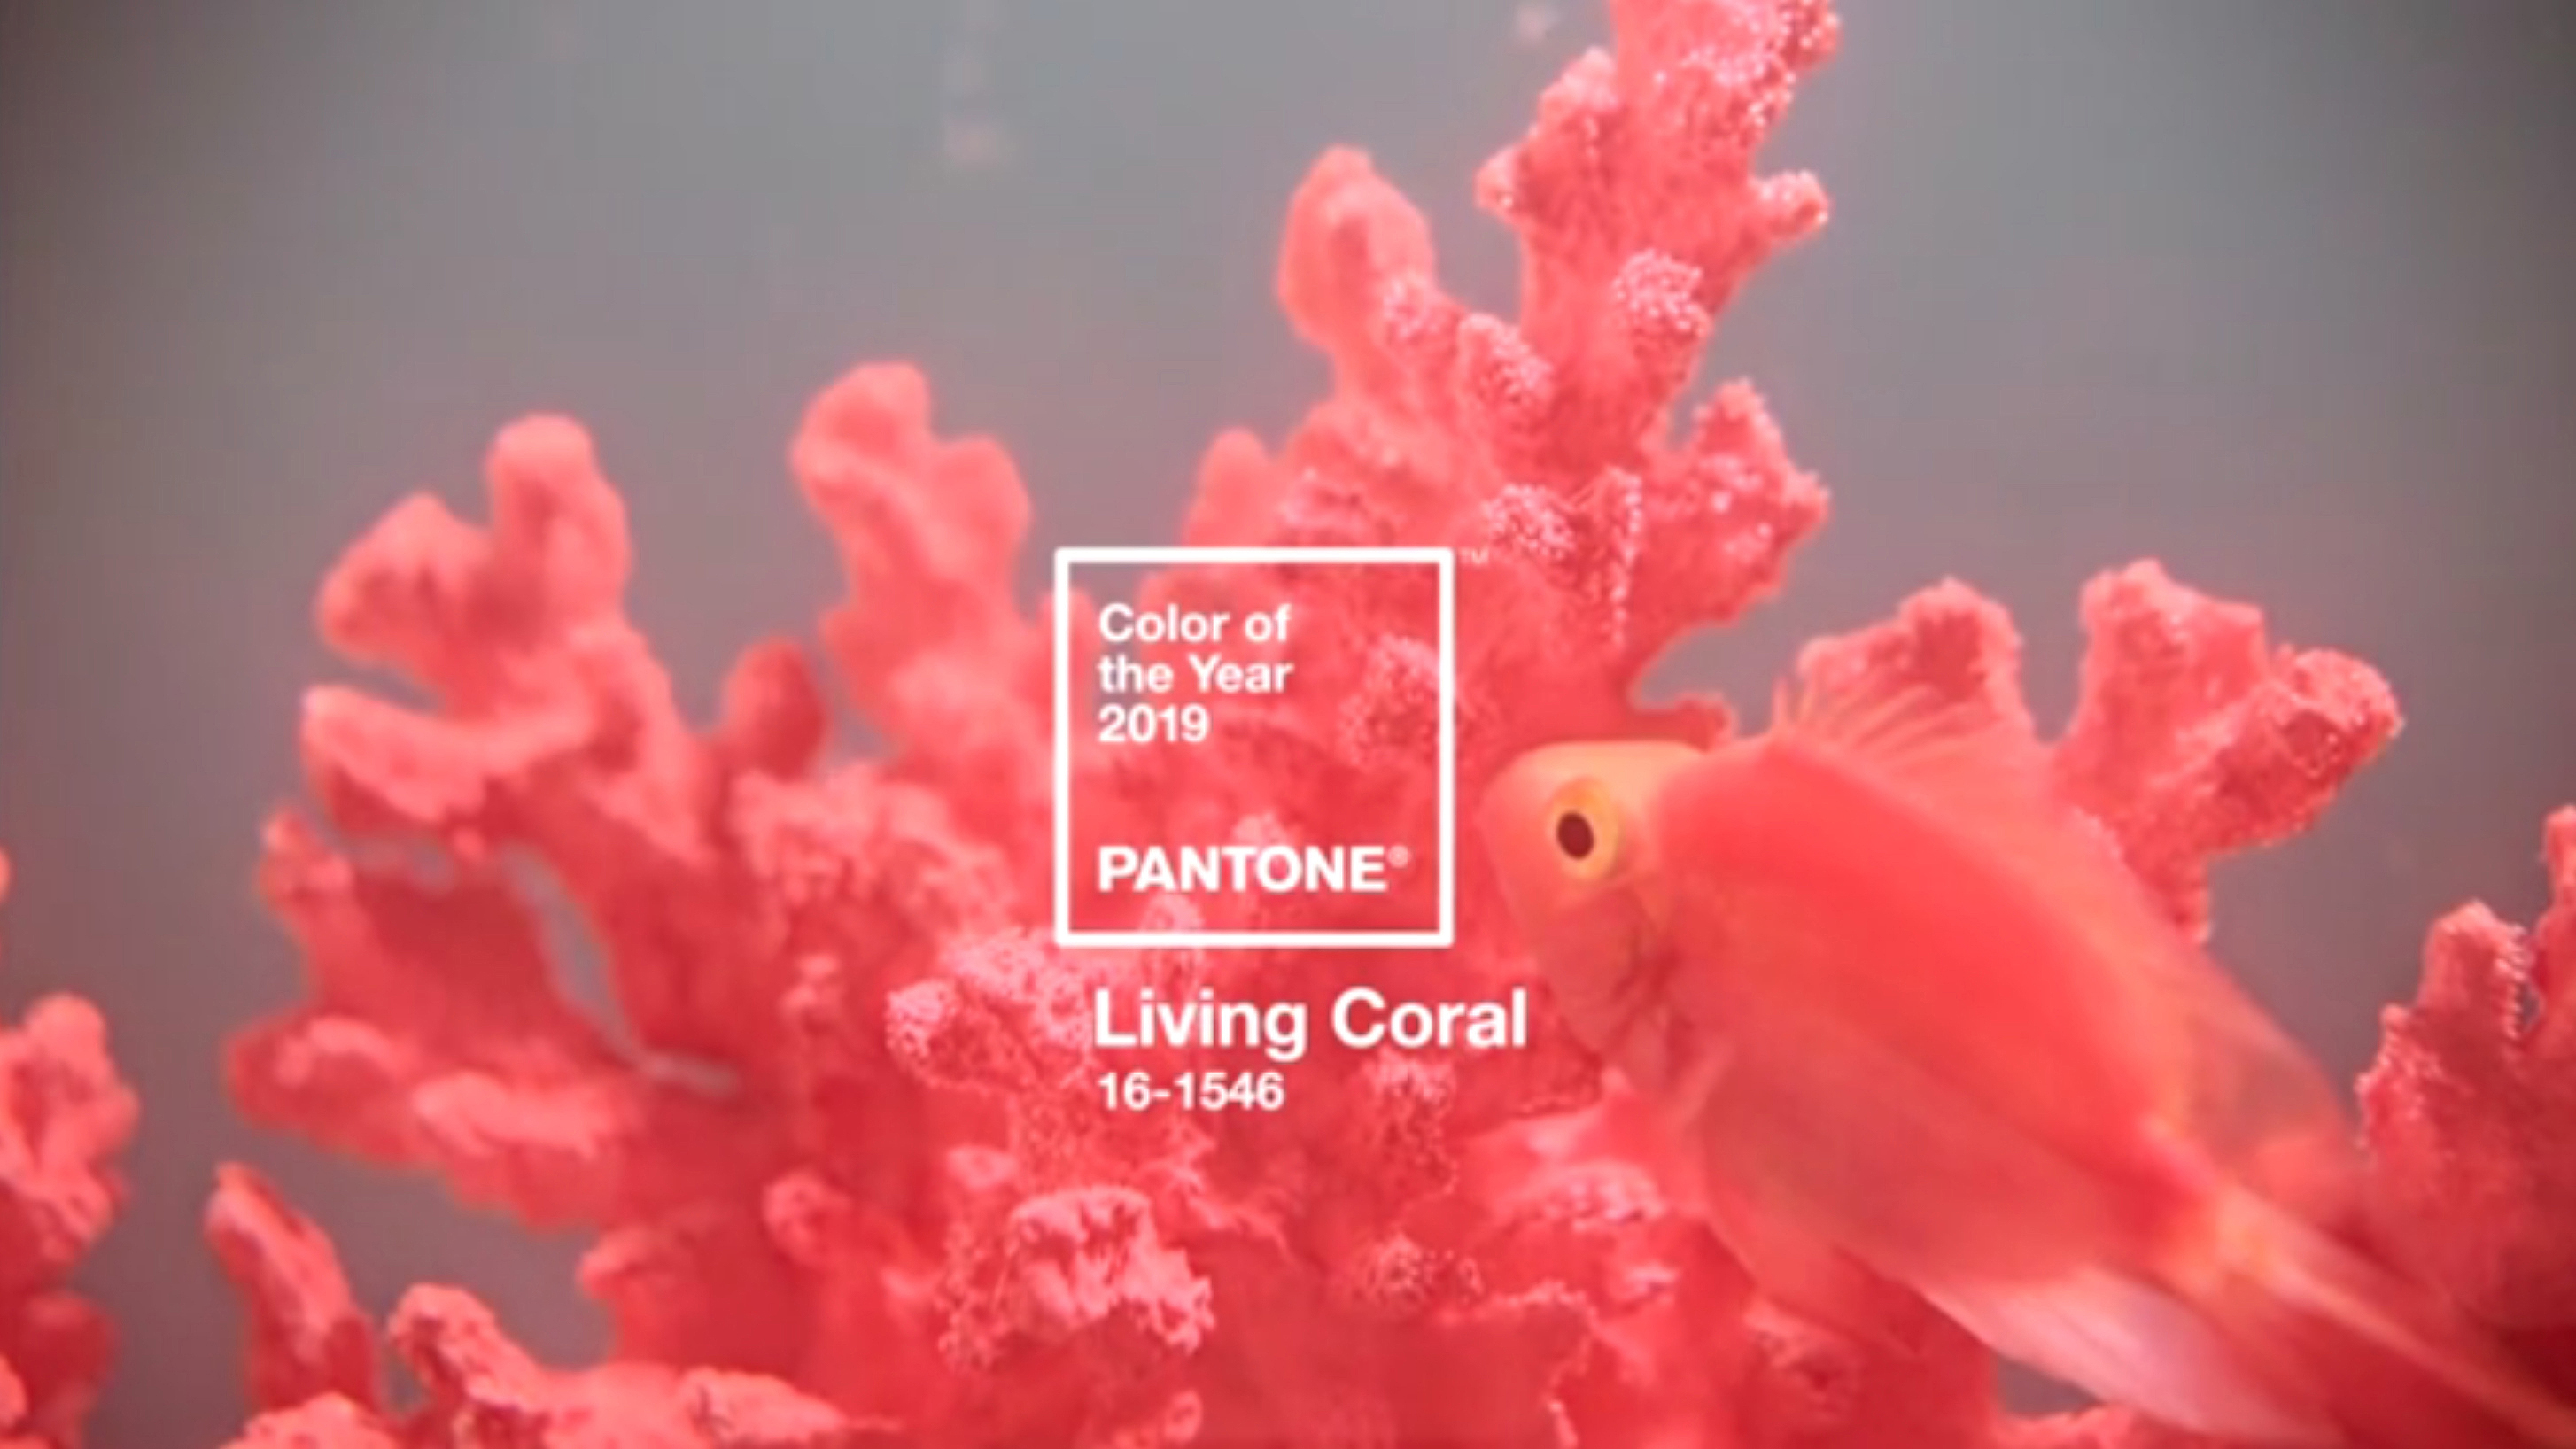 In Living Coral? Pantone tips pink-tinted hue for 2019 as ...